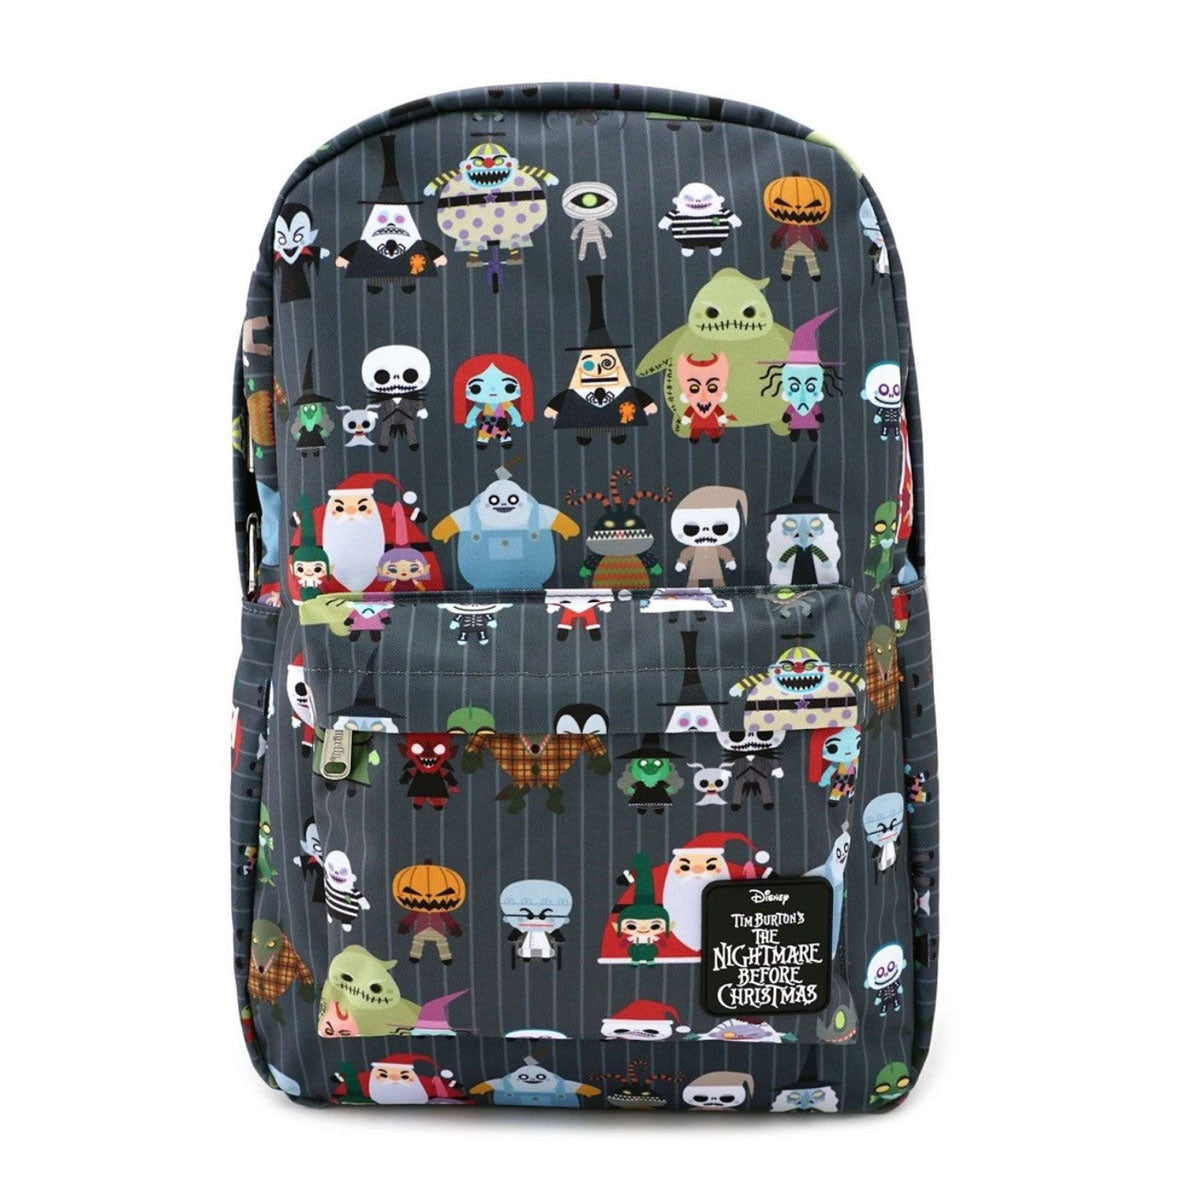 Loungefly X Disney - 25th Nightmare Before Christmas Character Backpack